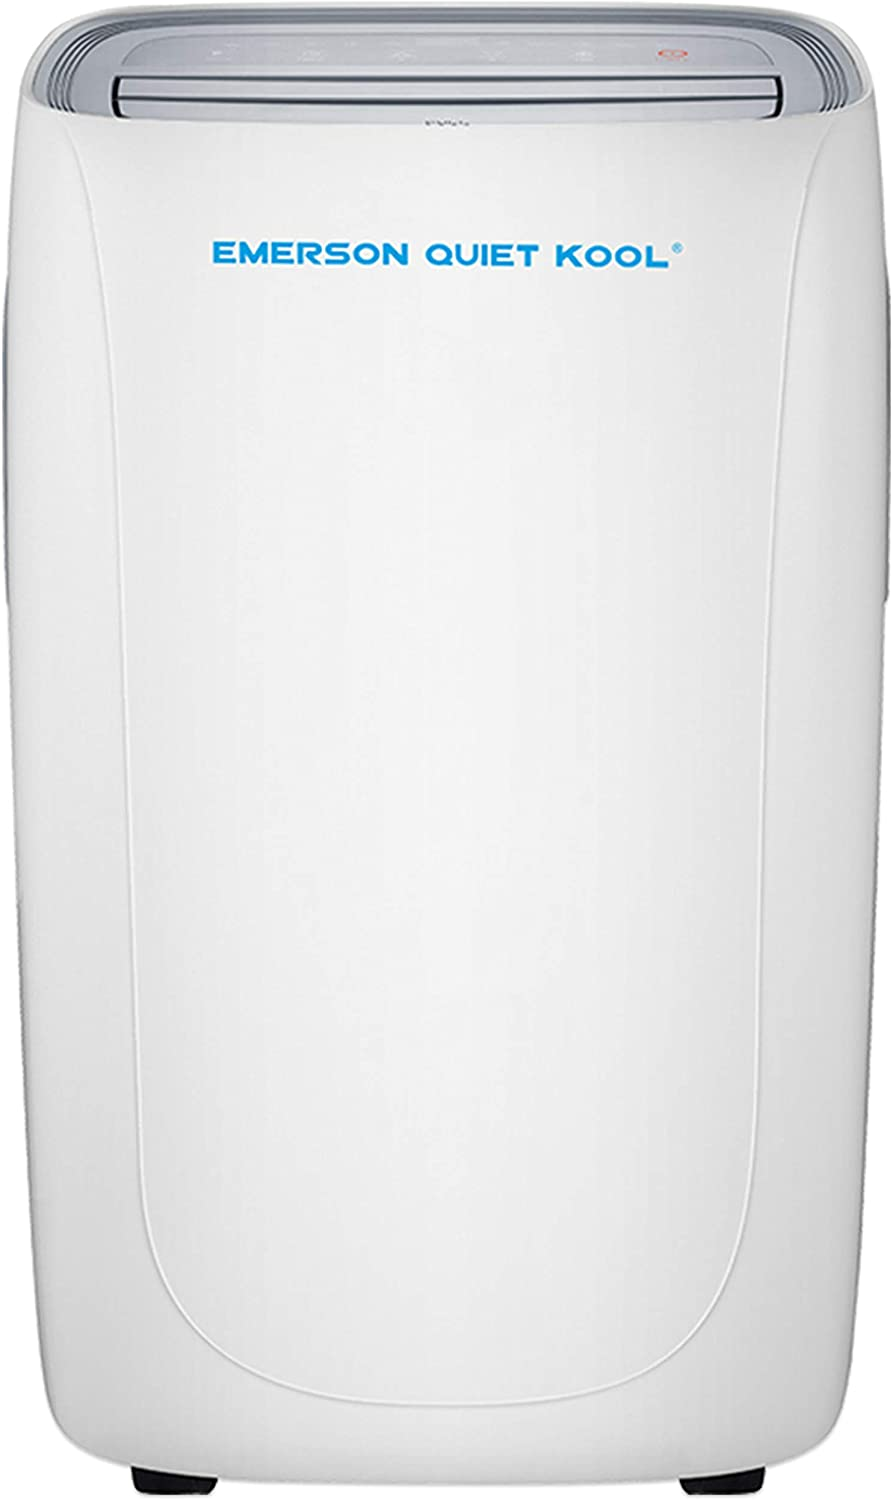 Emerson Quiet Kool EAPC12RD1 Portable Air Conditioner with Remote Control for Rooms up to 400-Sq. Ft.